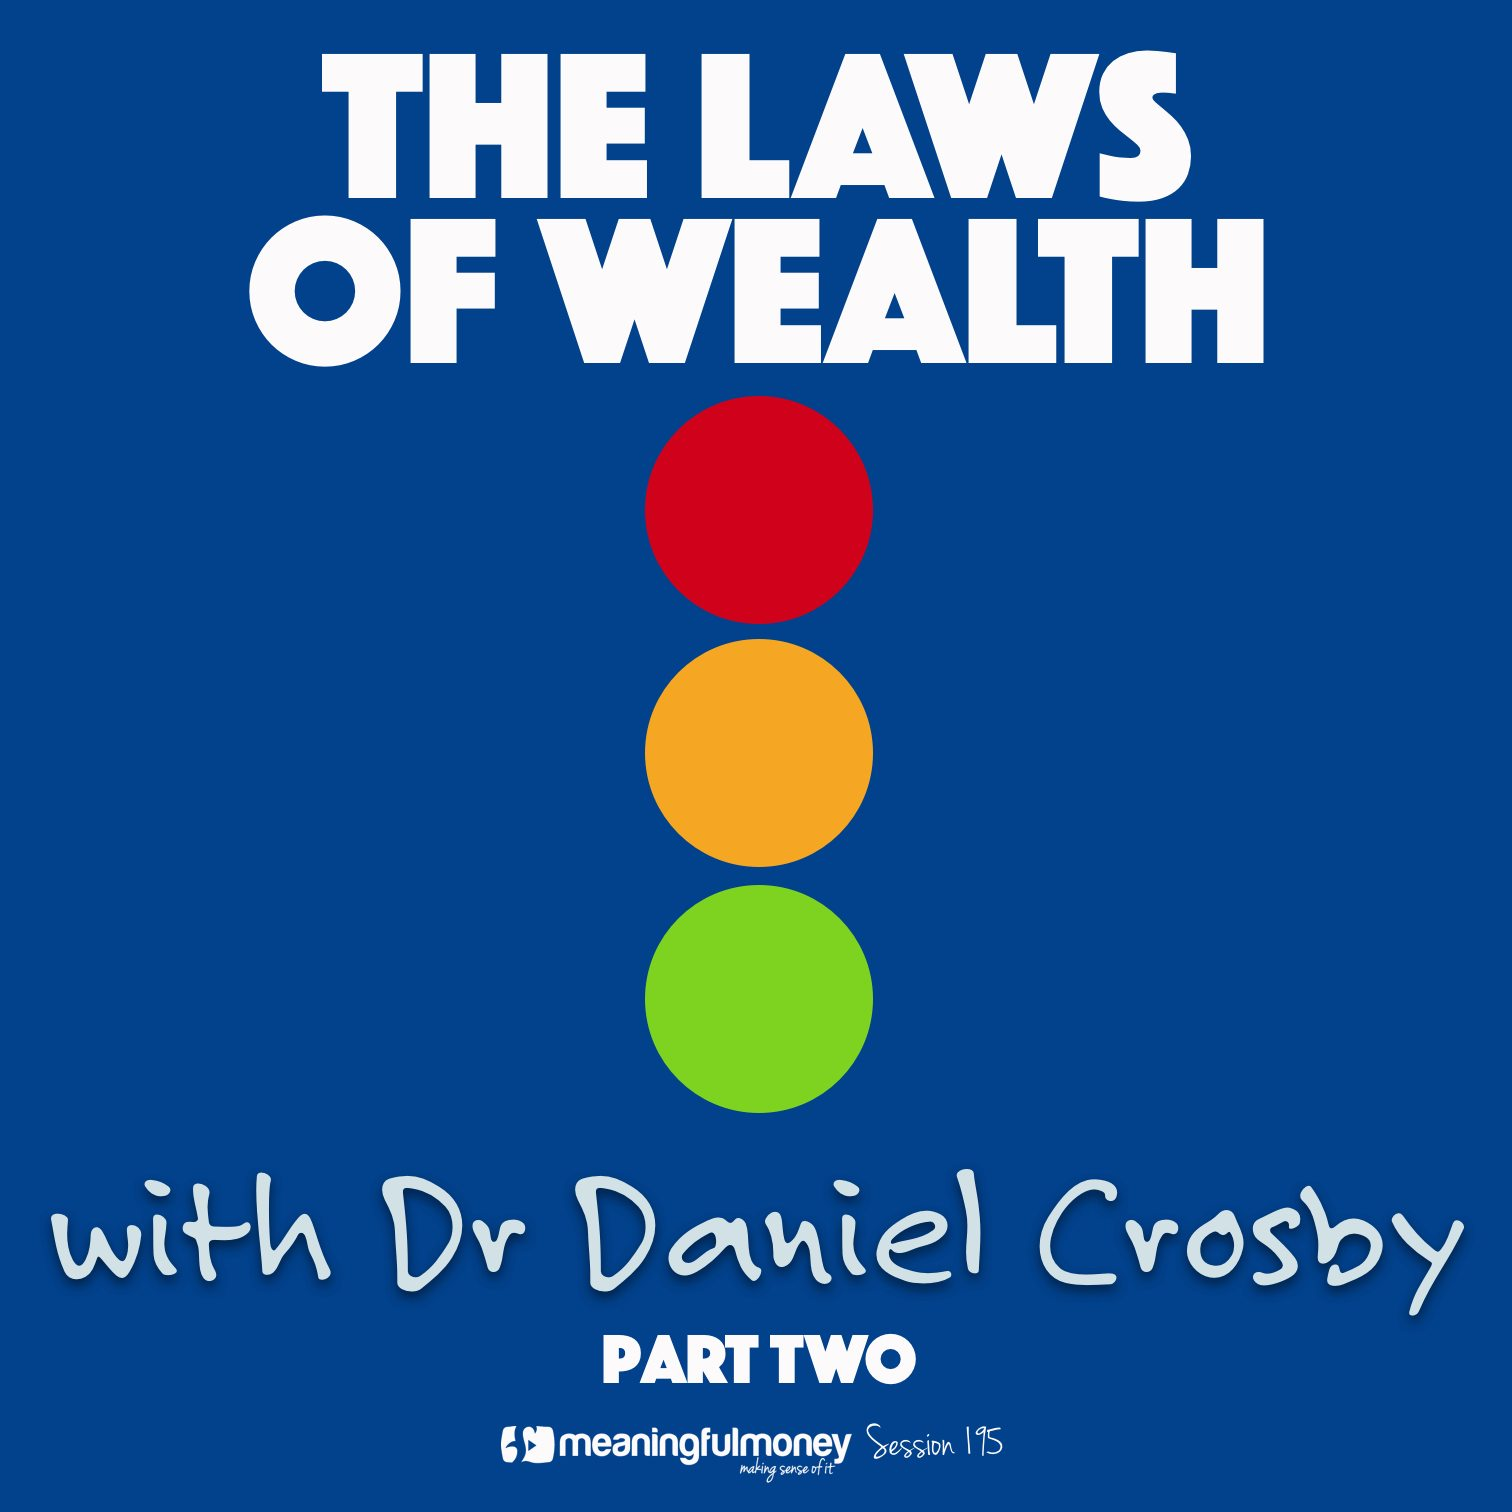 MMP195: The Laws Of Wealth, with Dr Daniel Crosby, Pt 2